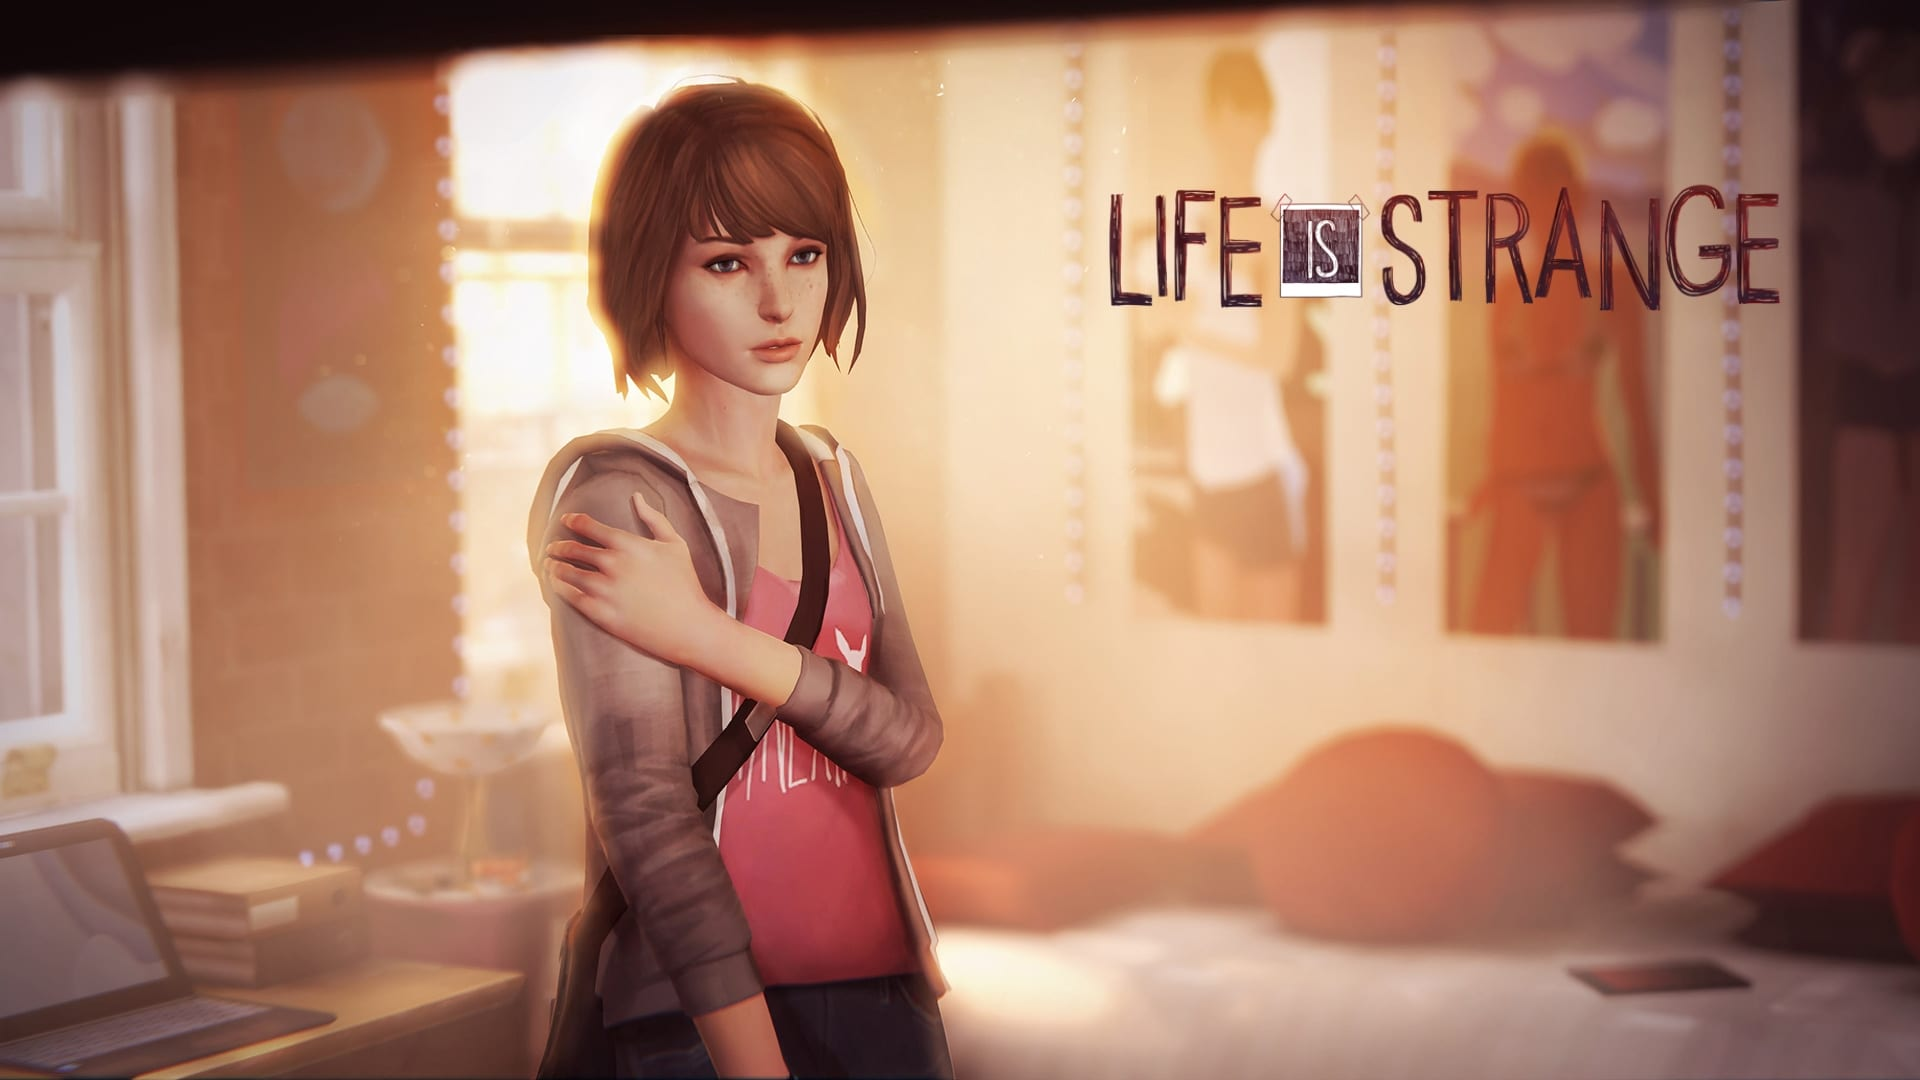 Storytelling In Games: Painting A Villain (Life Is Strange)